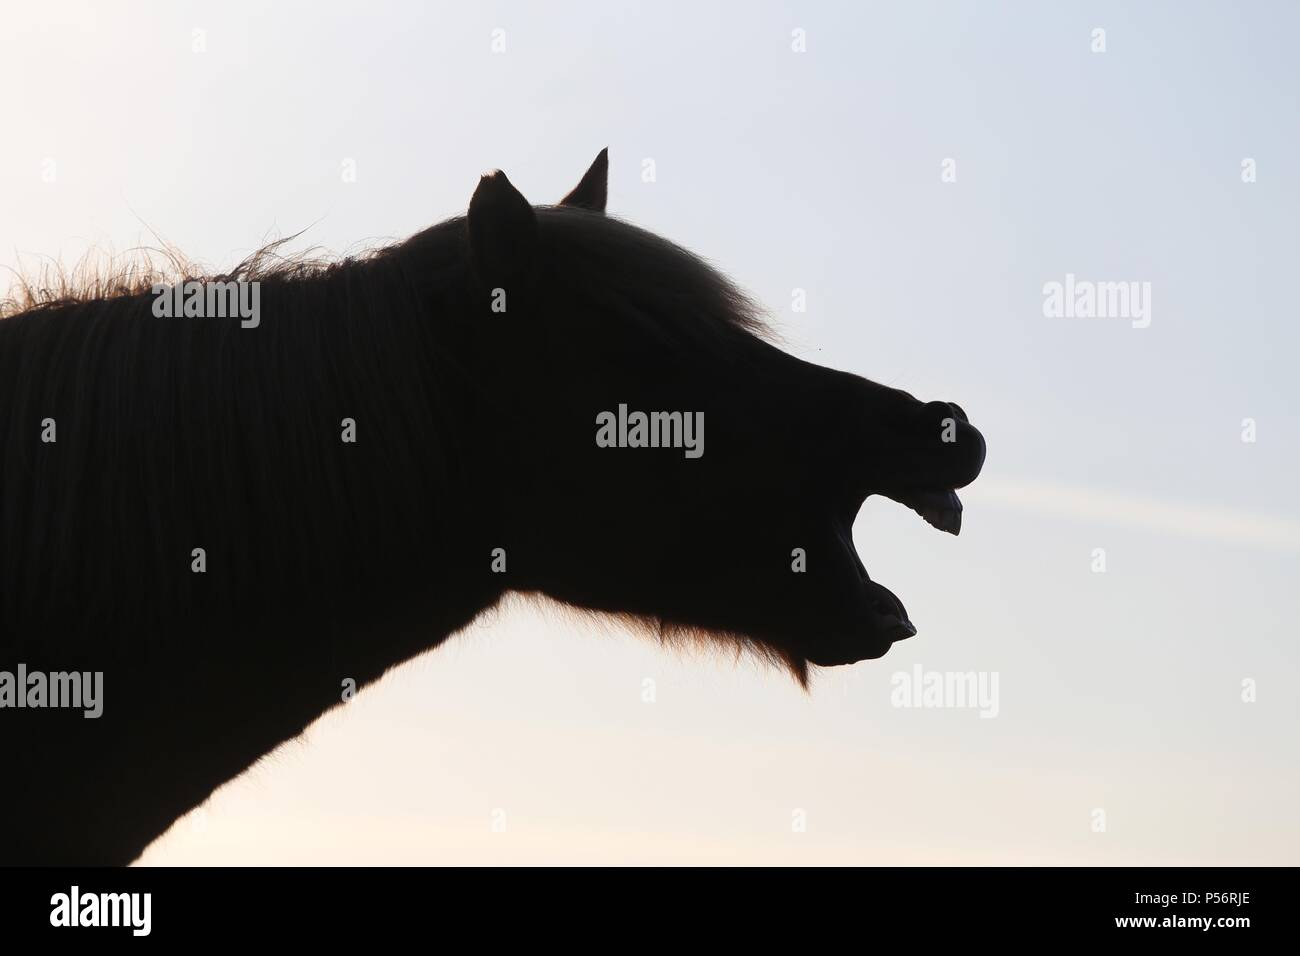 Icelandic horse at sunset - Stock Image